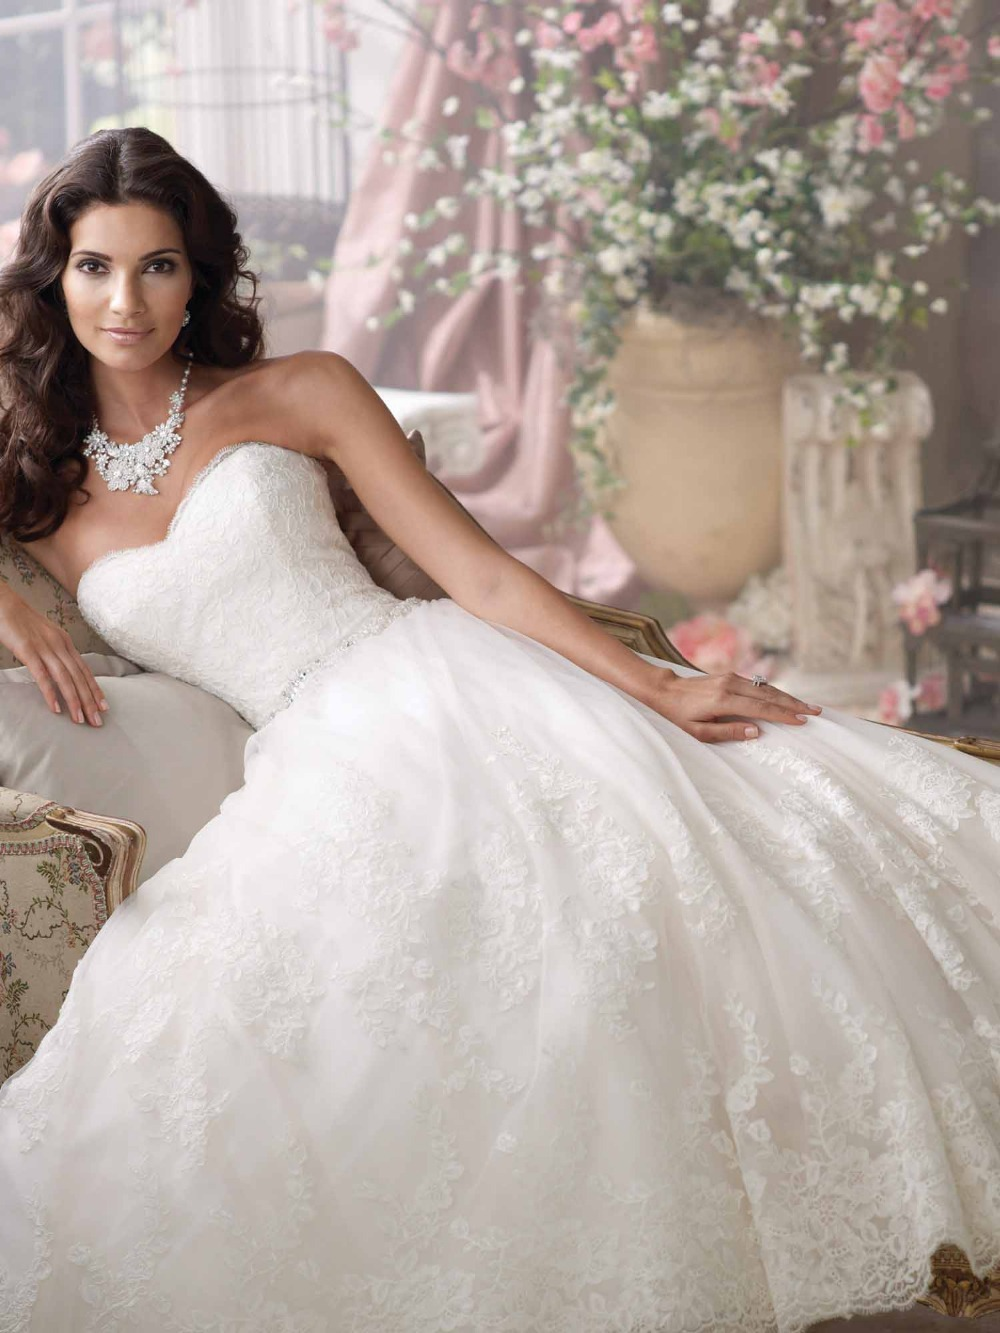 Long Lace Sleeves Modest Wedding Dress With Big Bow On The Back pid big wedding dresses Long Lace Sleeves Modest Wedding Dress With Big Bow On The Back